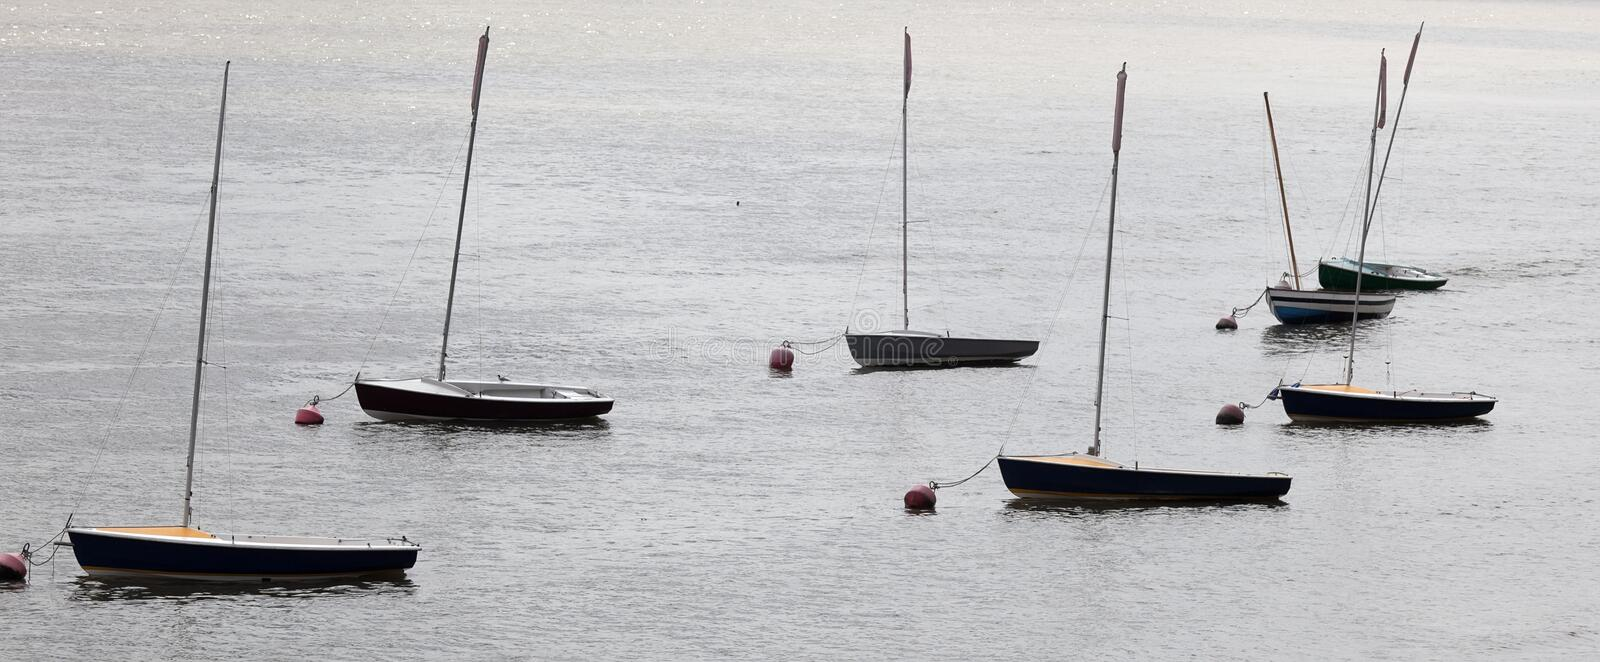 Small Yachts On The River Thames. London. UK Royalty Free Stock Photos